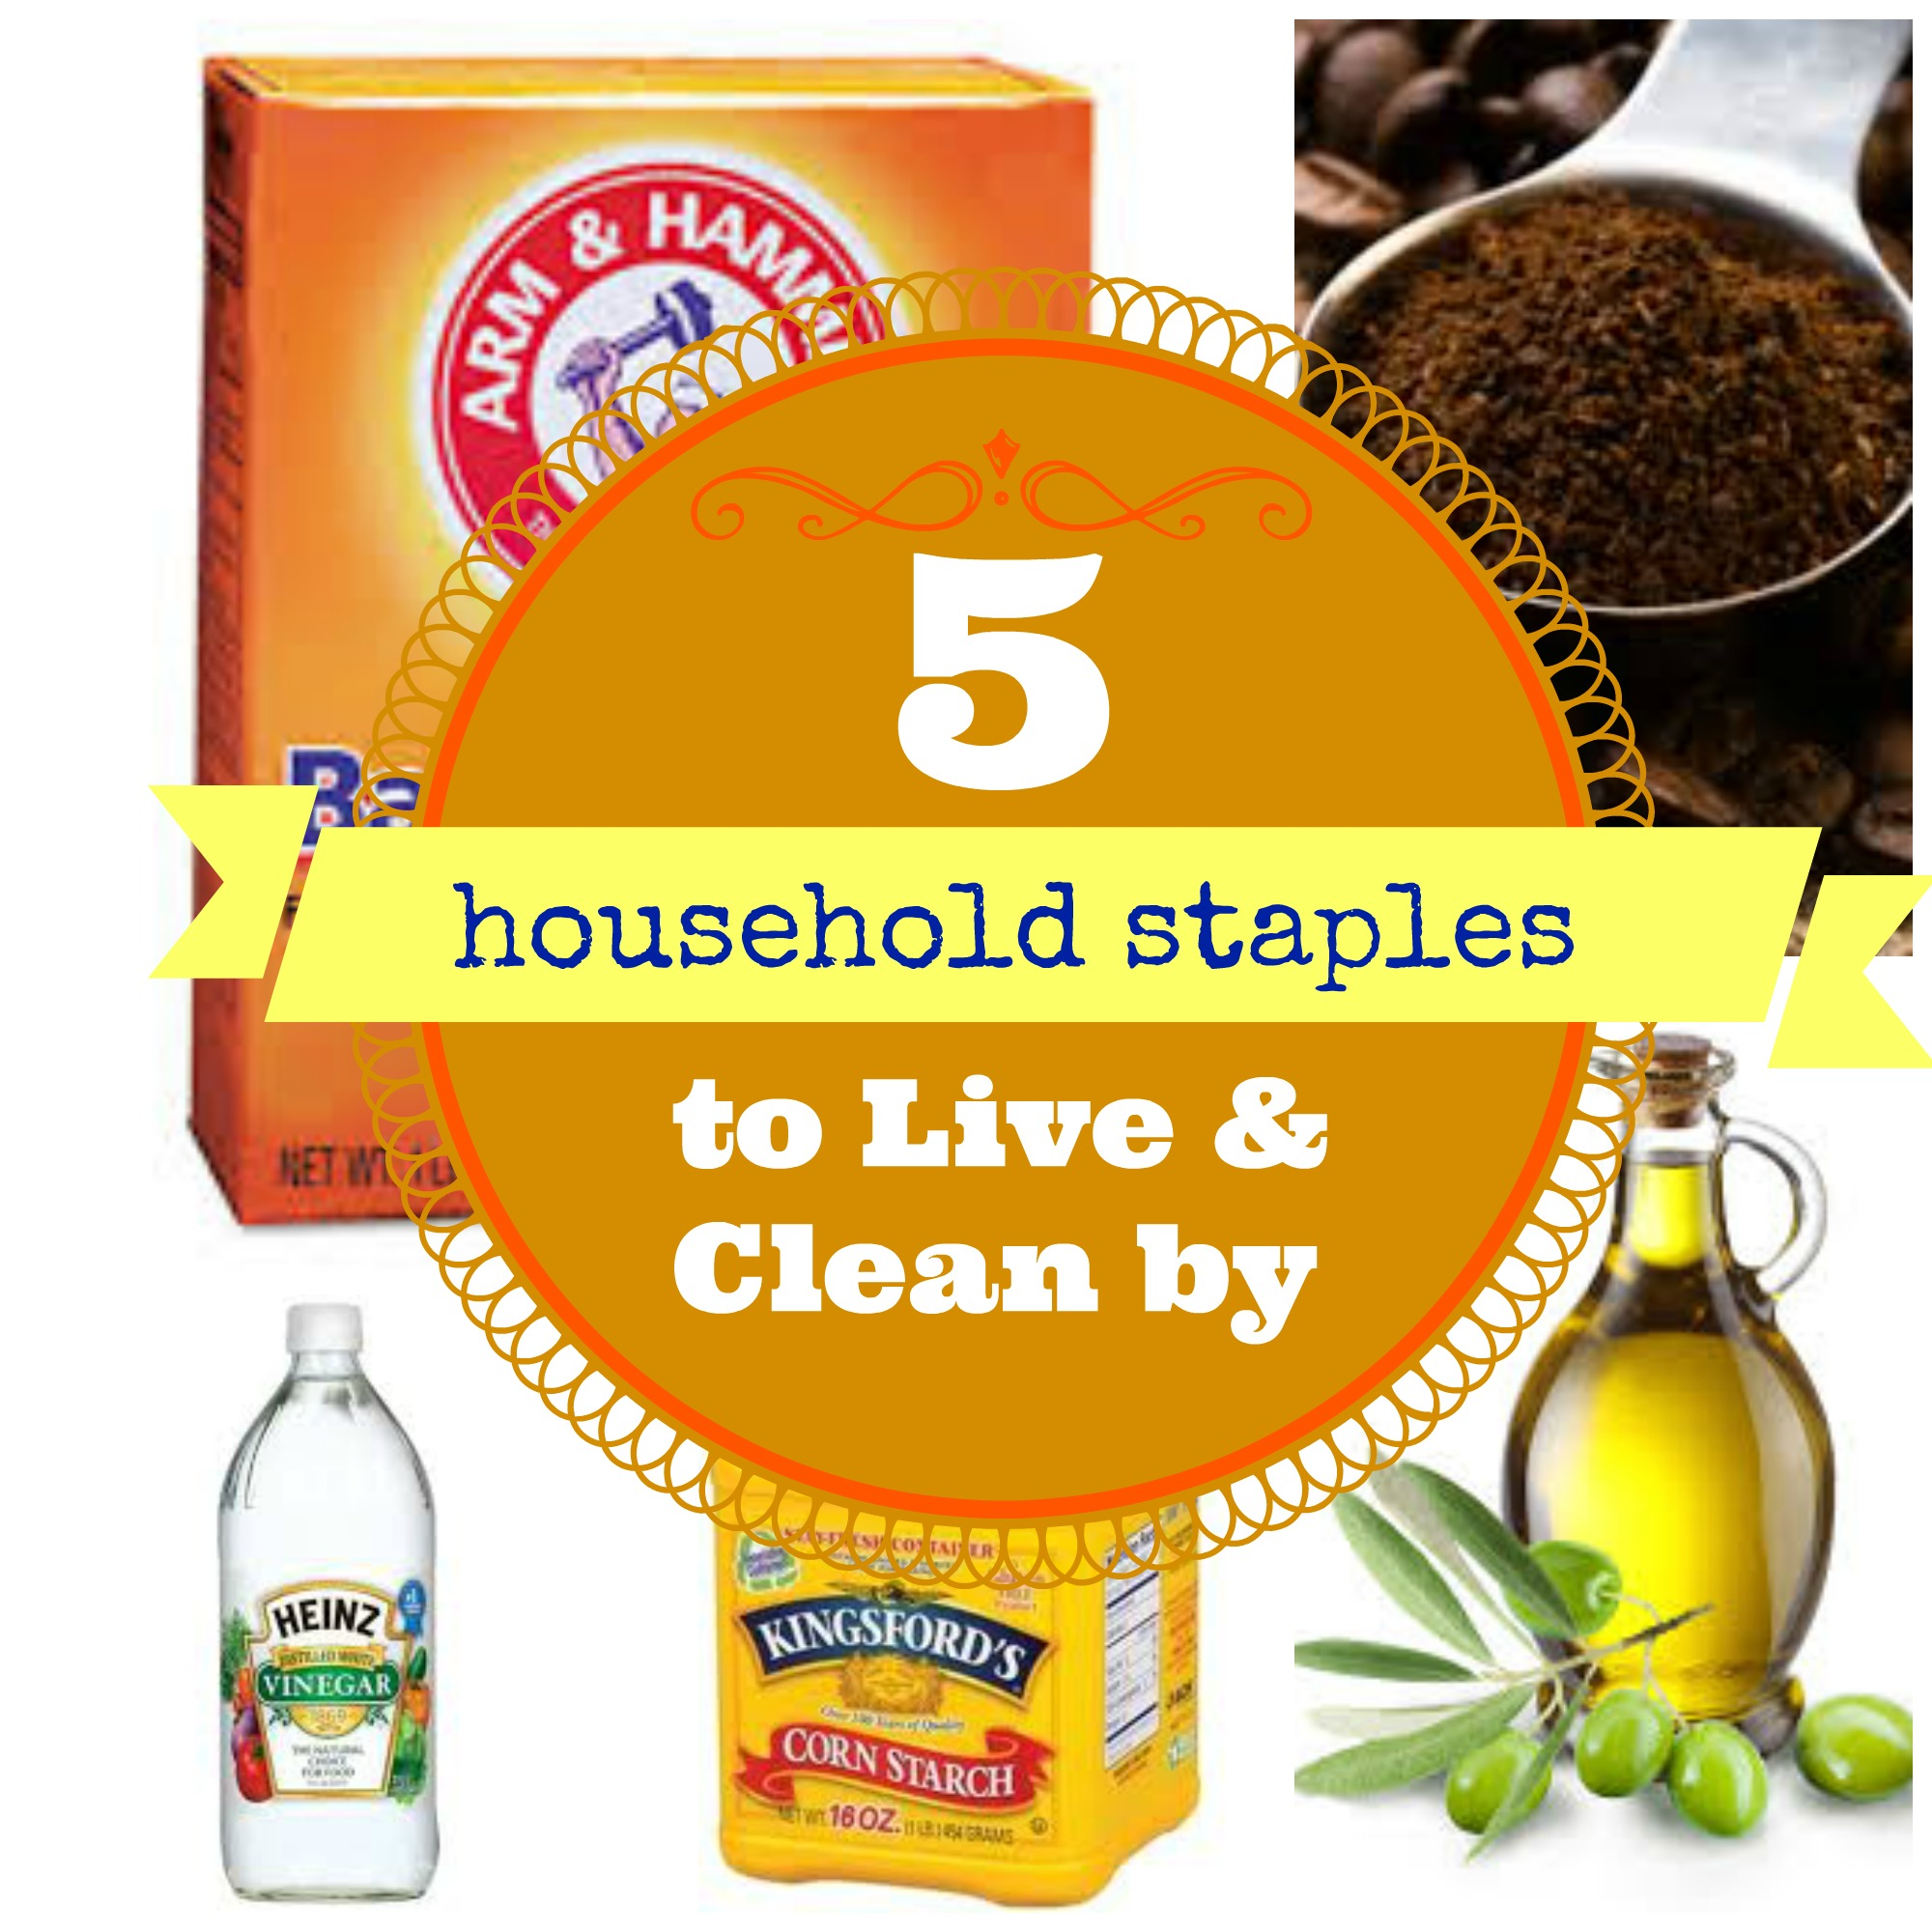 5-Household-staples-to-live-and-clean-by Did you know all the household uses for vinegar, coffee grinds, baking soda and more?